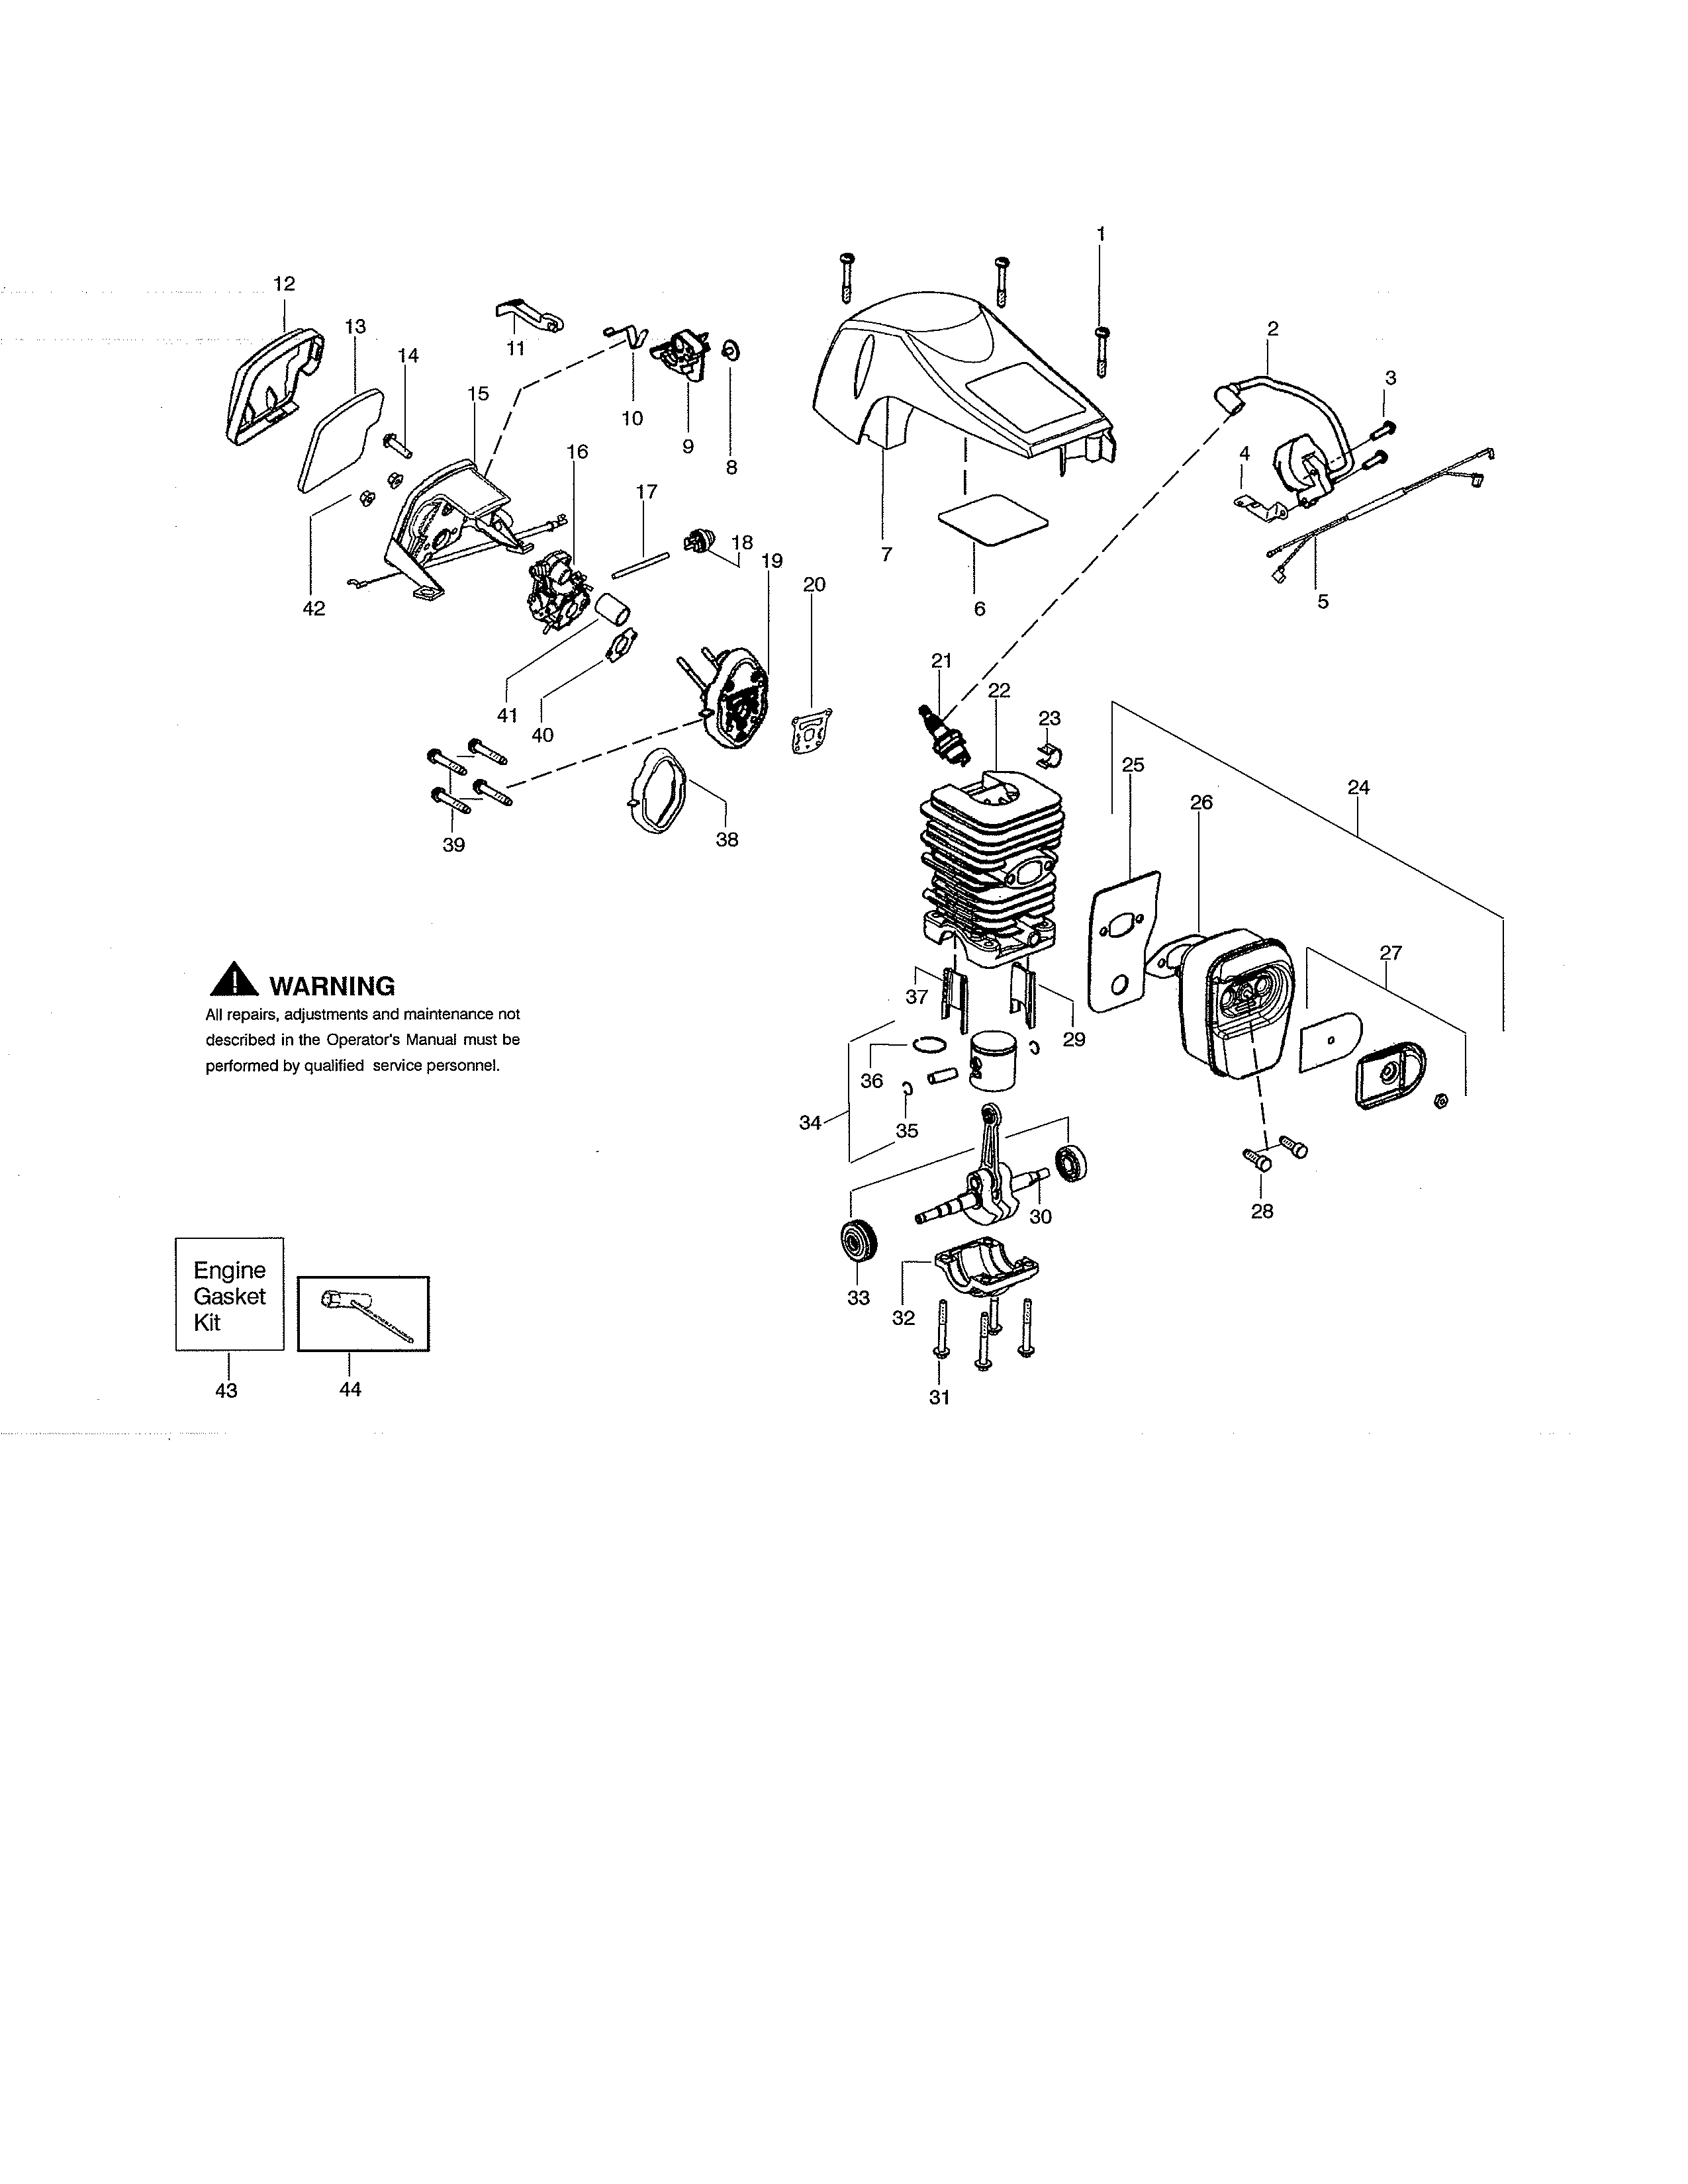 Wiring Diagram Database: Poulan Pro 42cc Chainsaw Parts